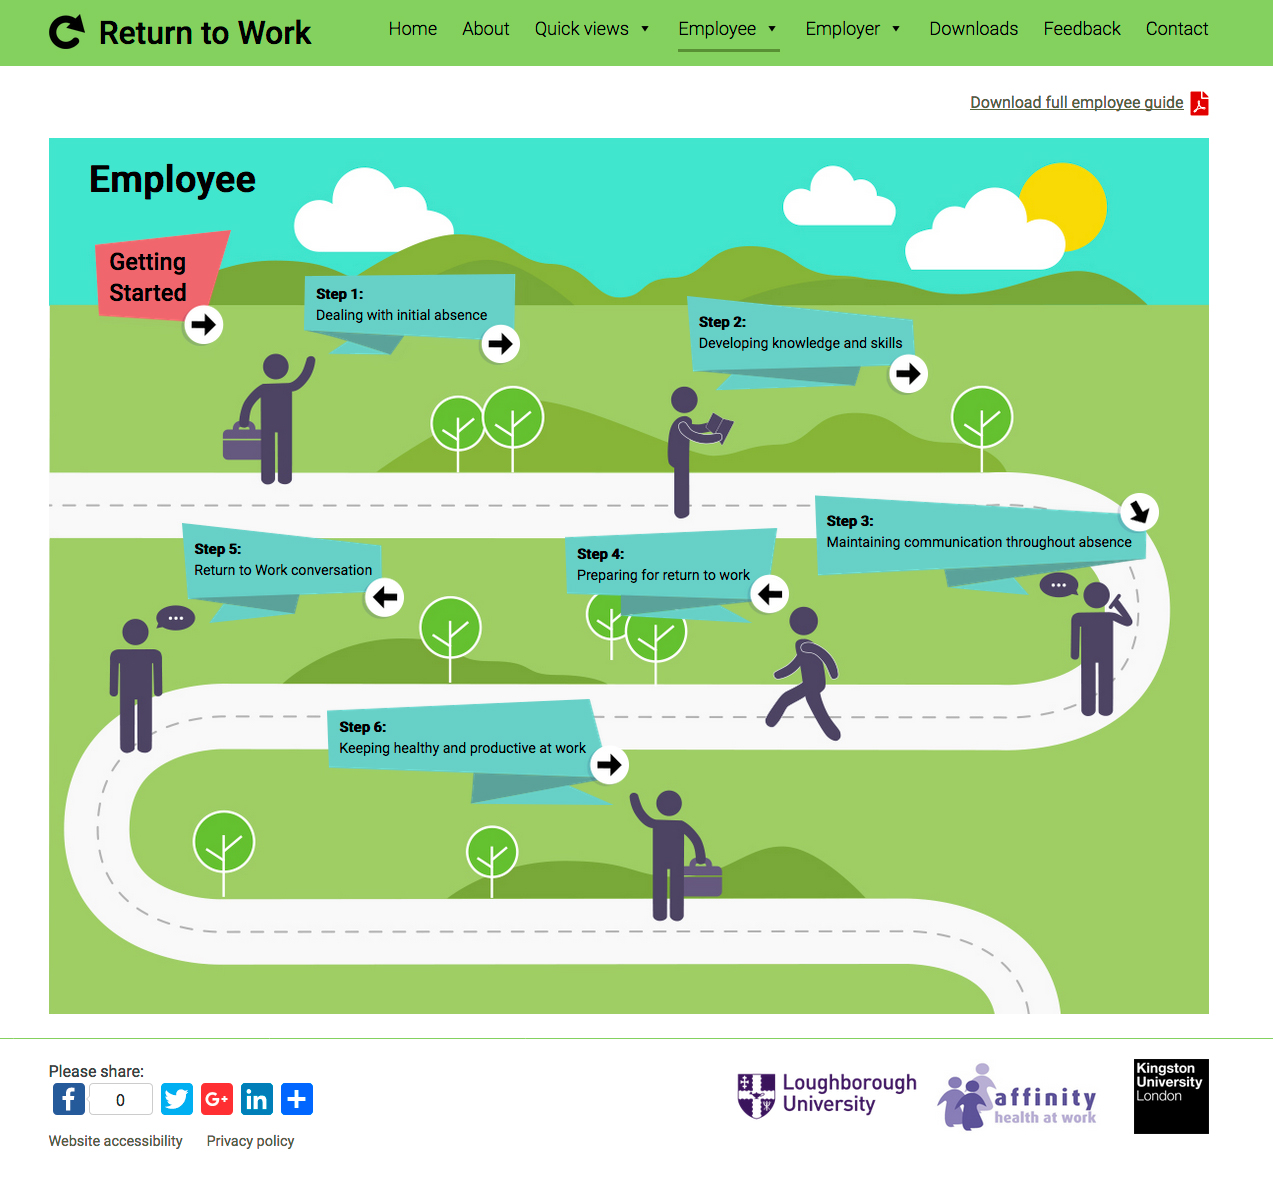 Screenshot of Employee return to work page